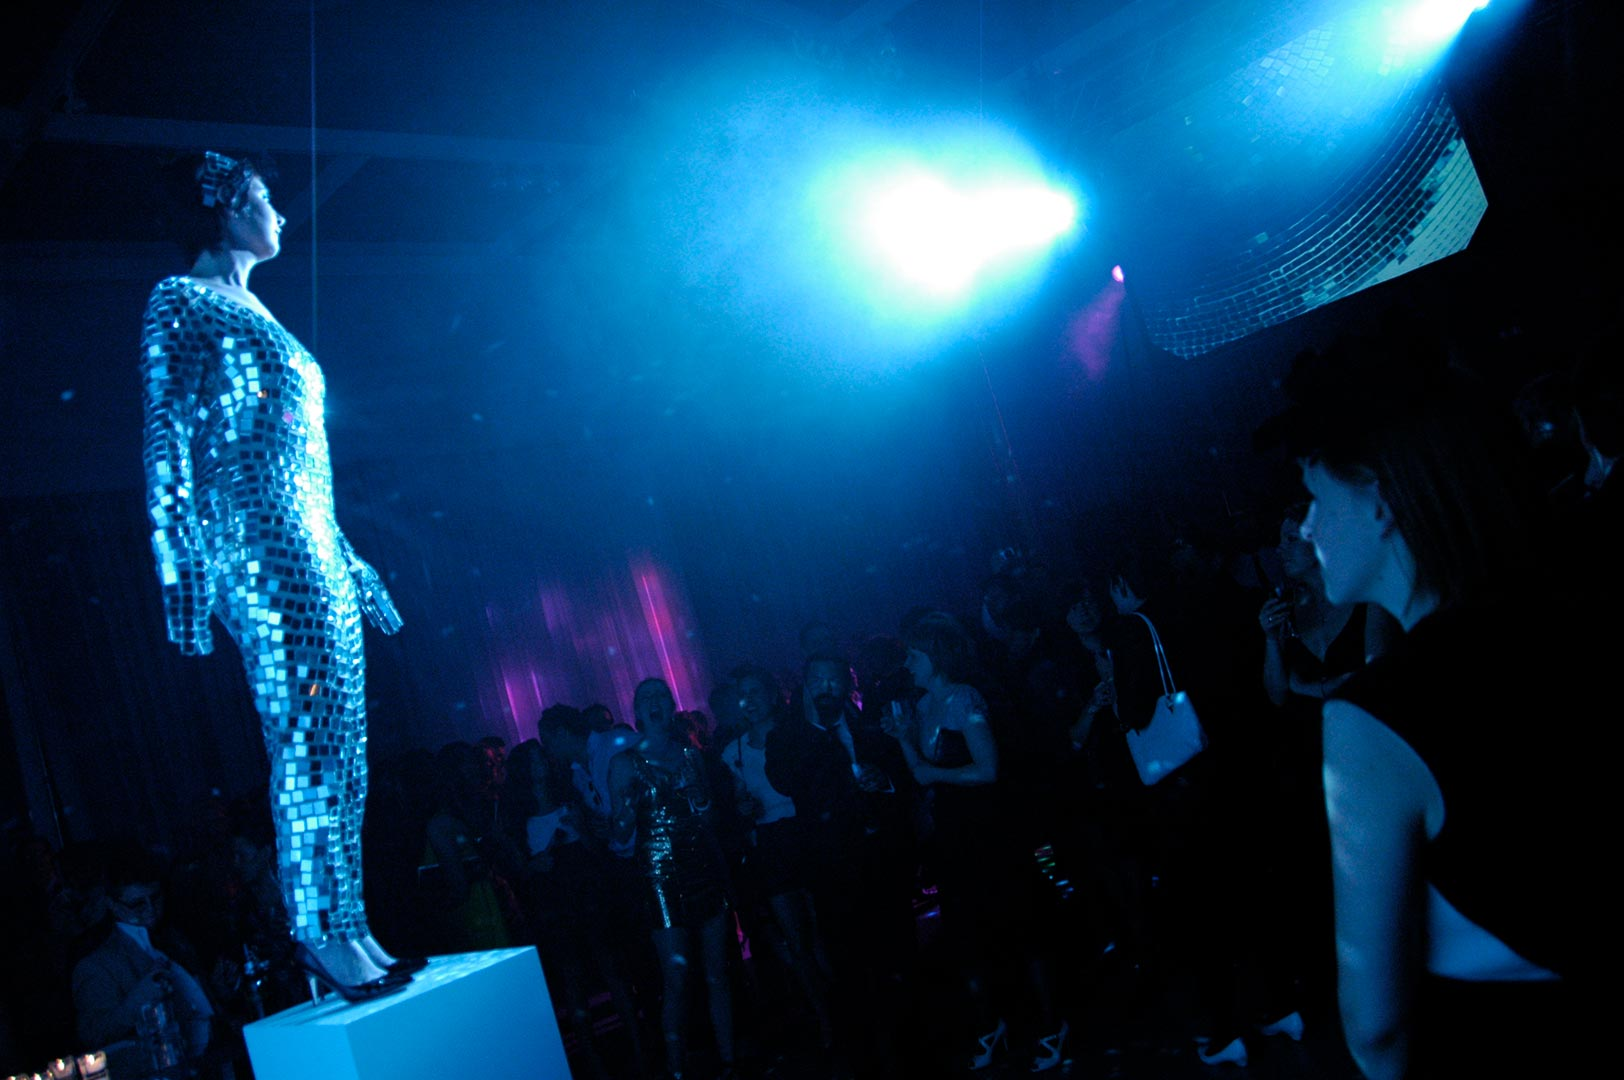 A woman, dressed in a pantsuit resembling a disco ball, stands on a plinth. Spotlit, she is performing for an audience in a darkened environment.